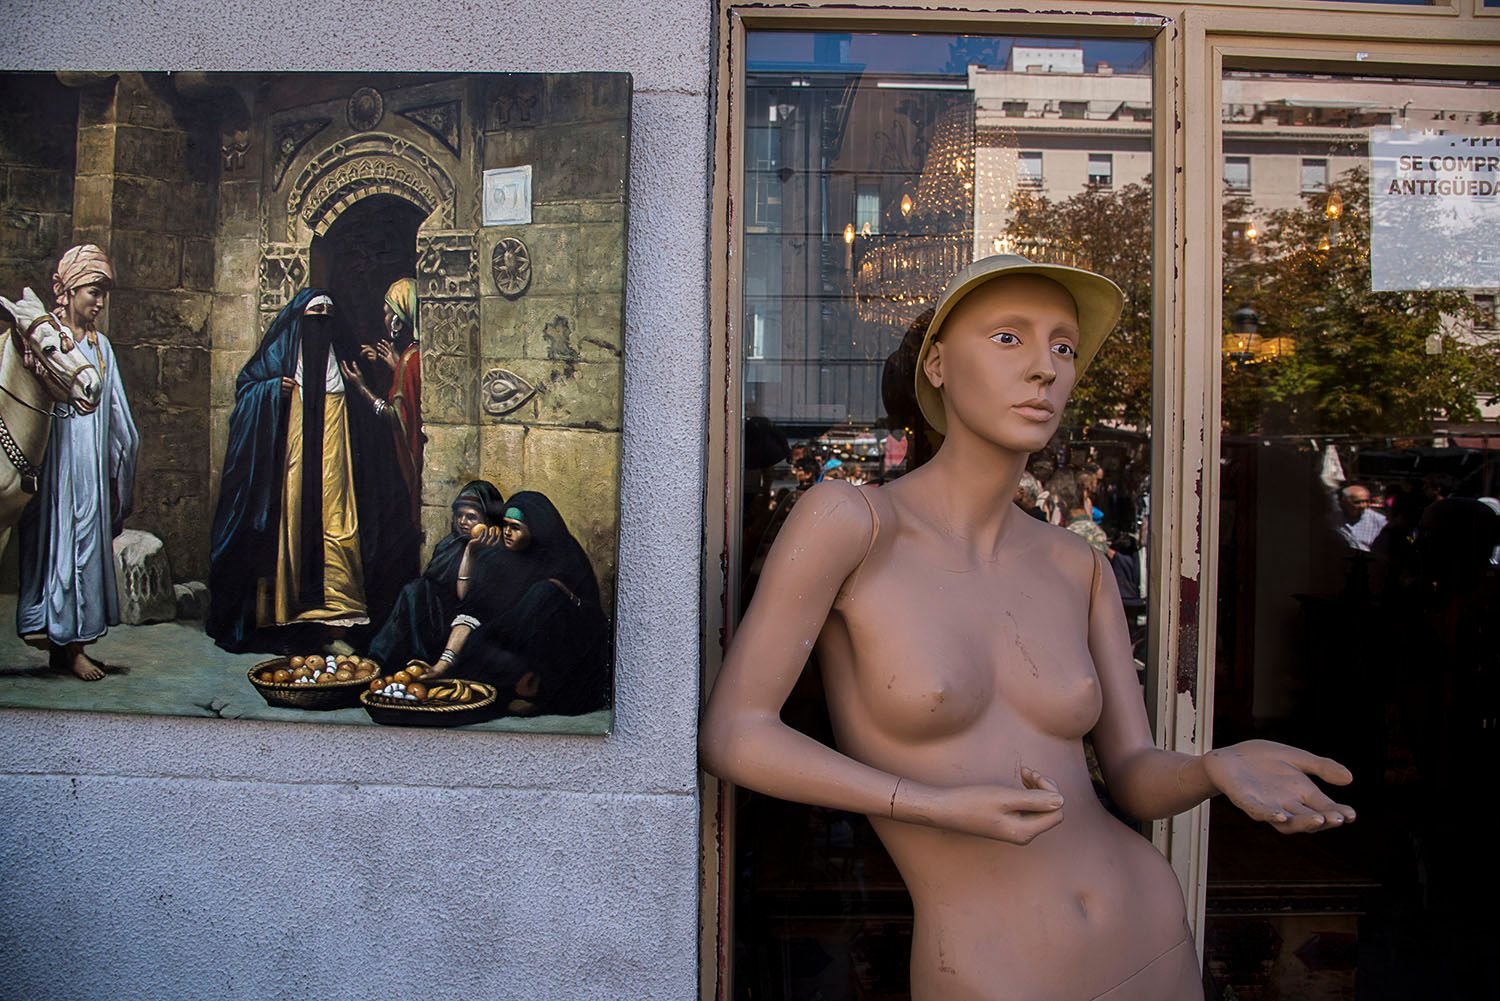 Nude female mannequin wearing a hat